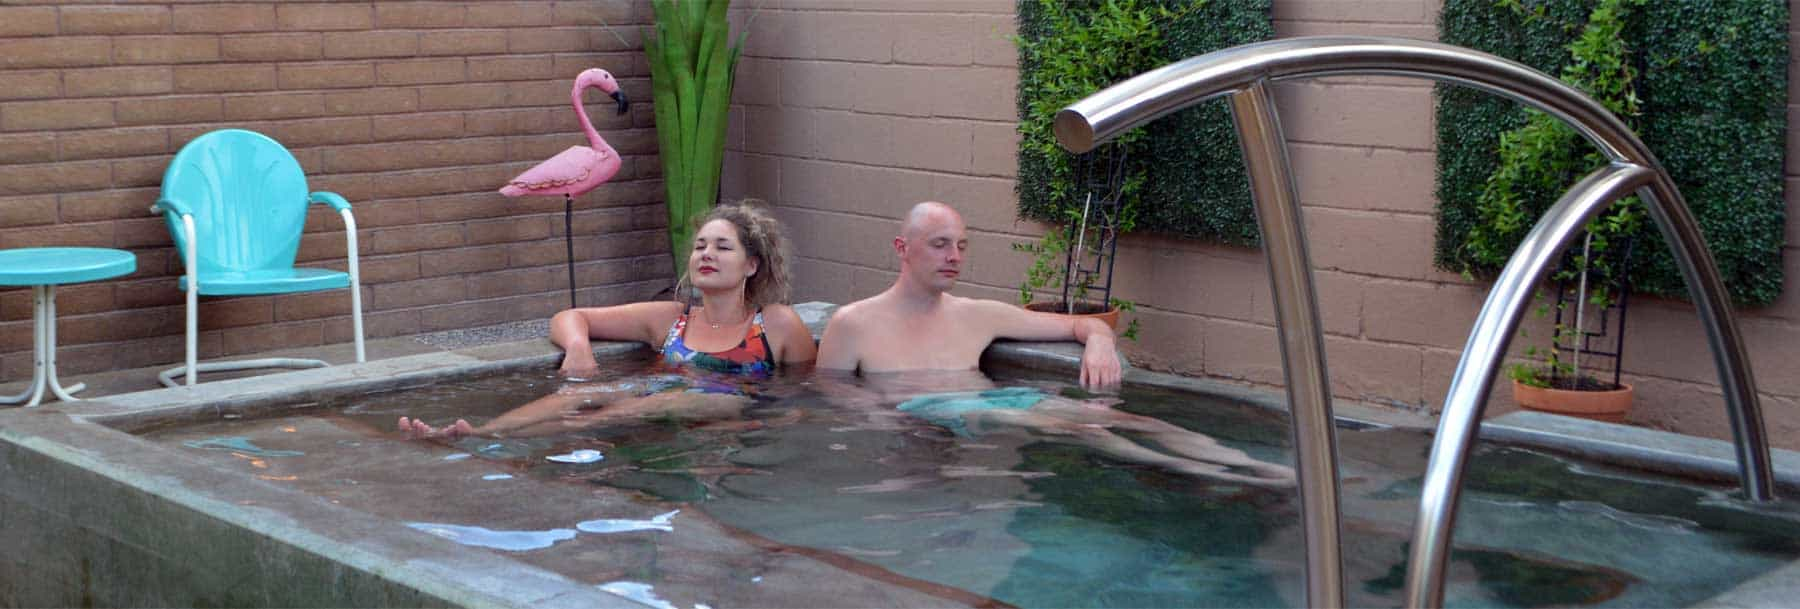 couple soaking at blackstone hotsprings in torc